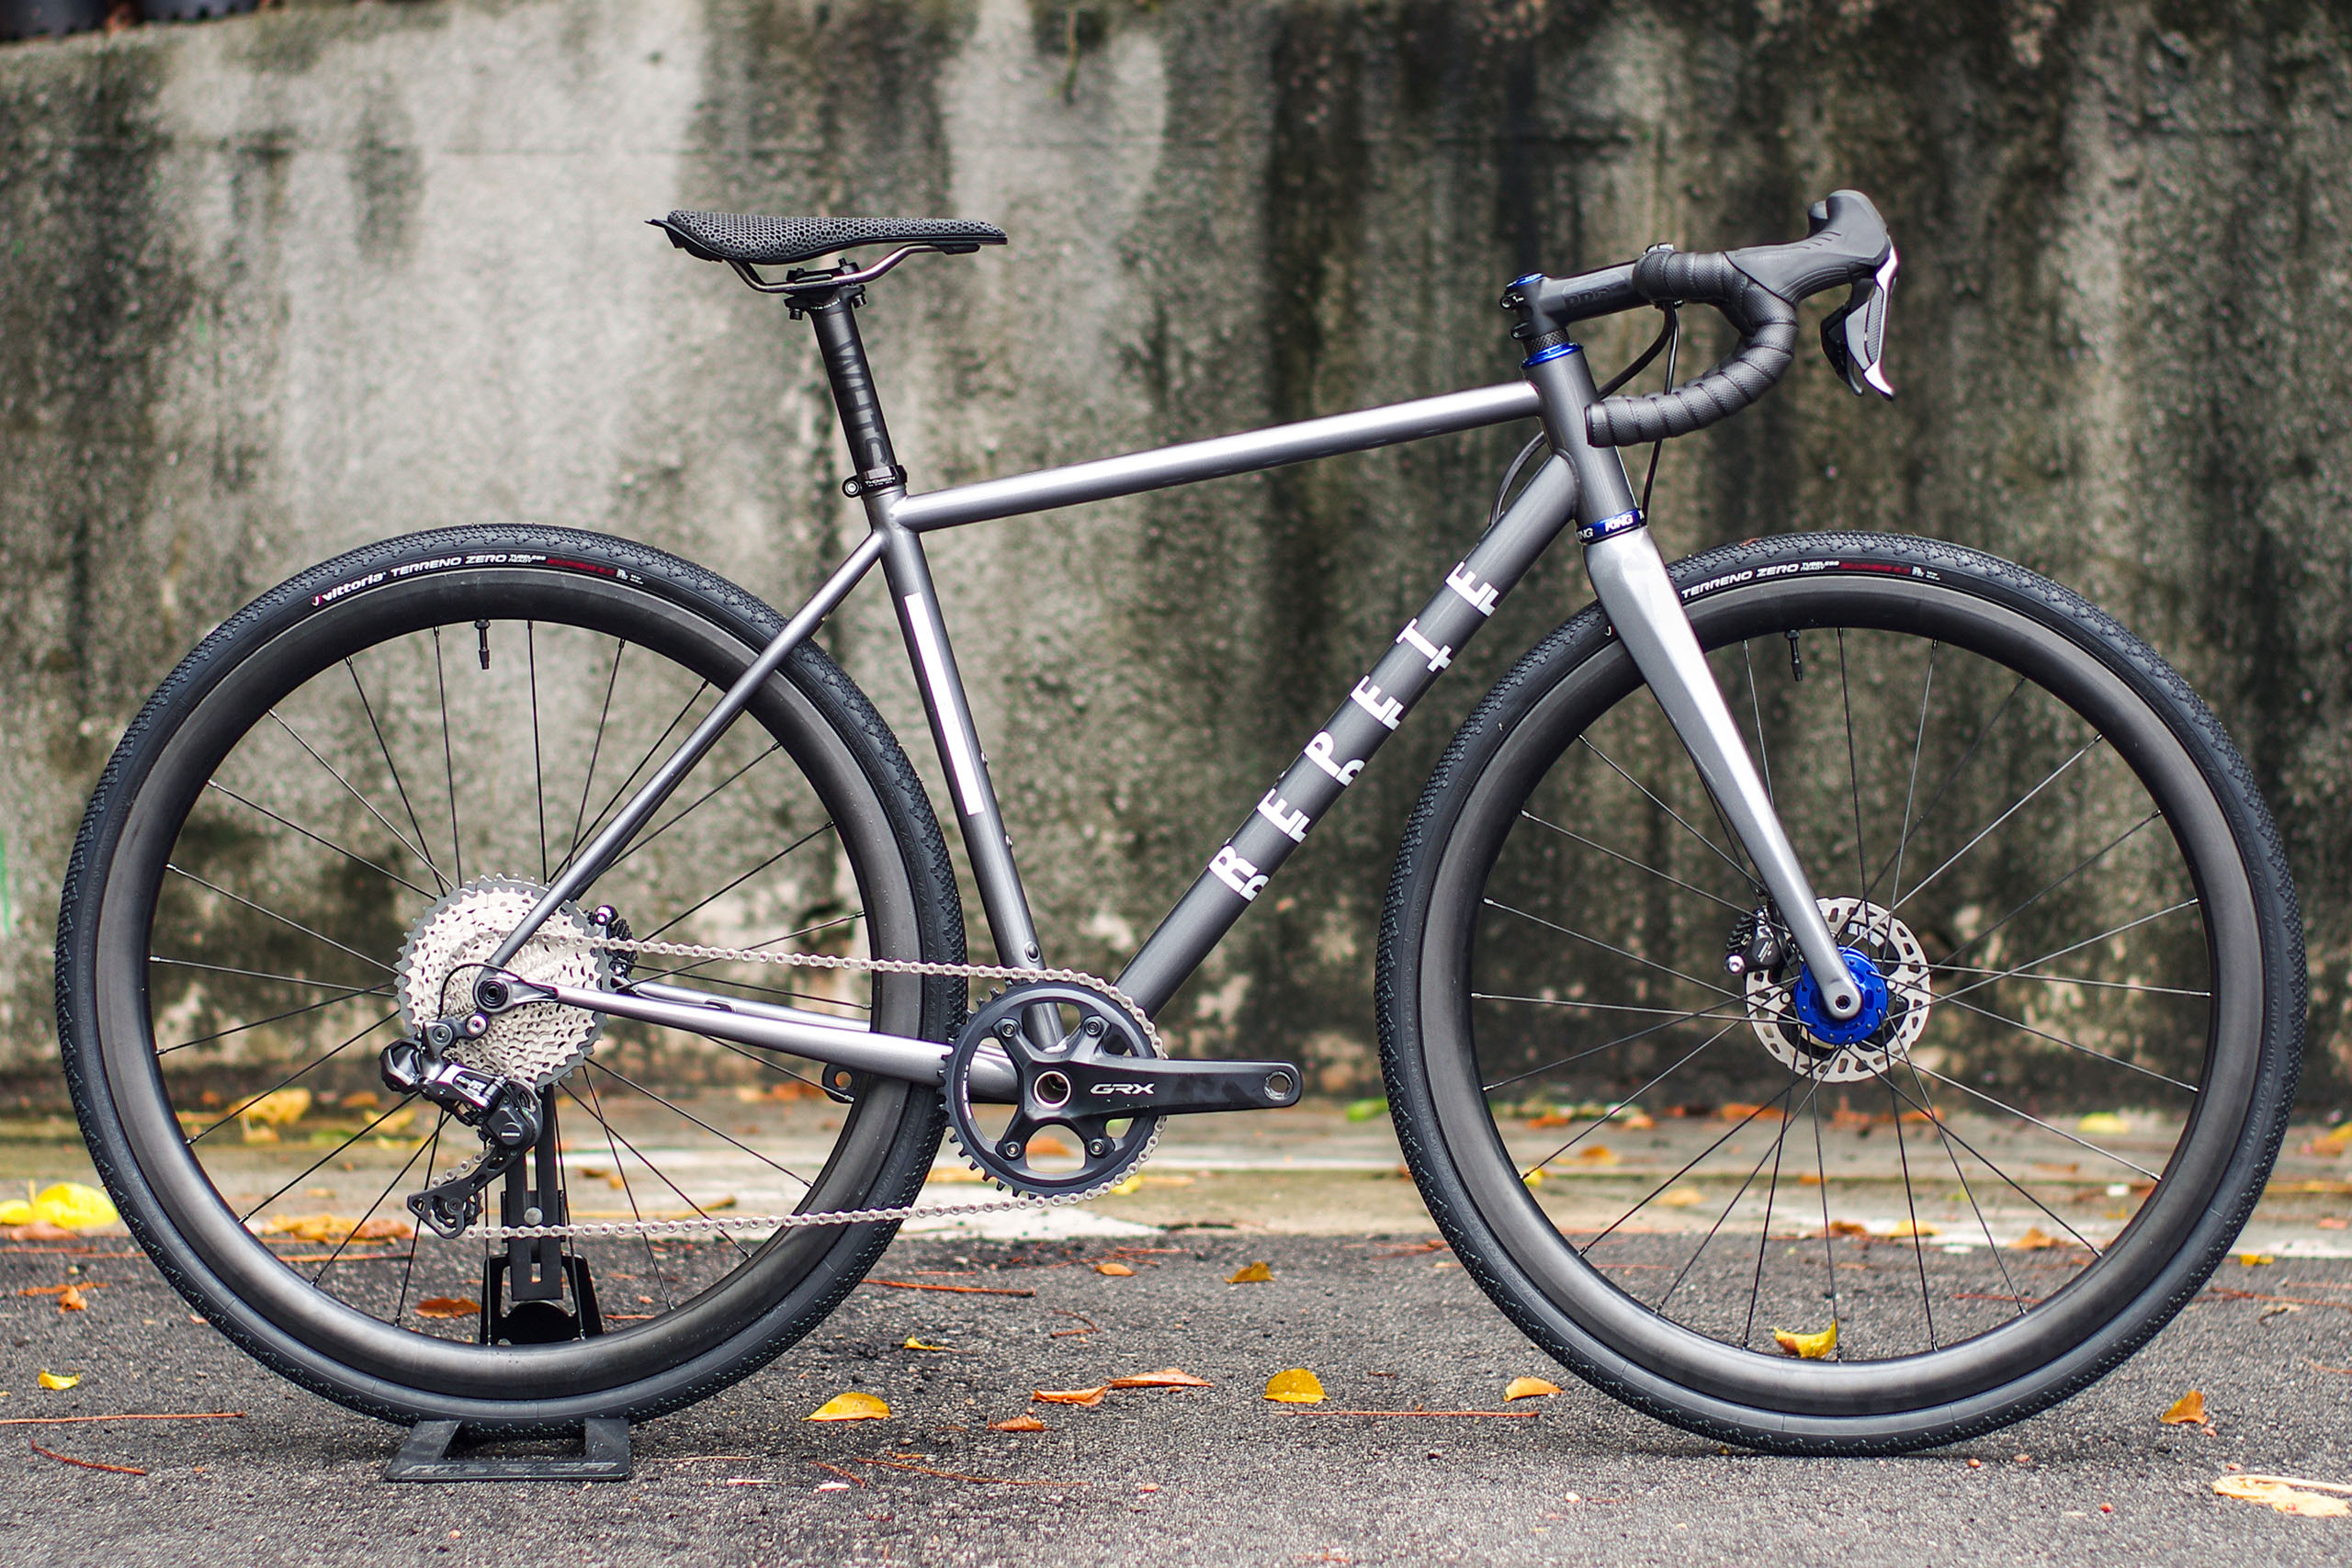 repete_gravel_fitskuul_cycleproject_7